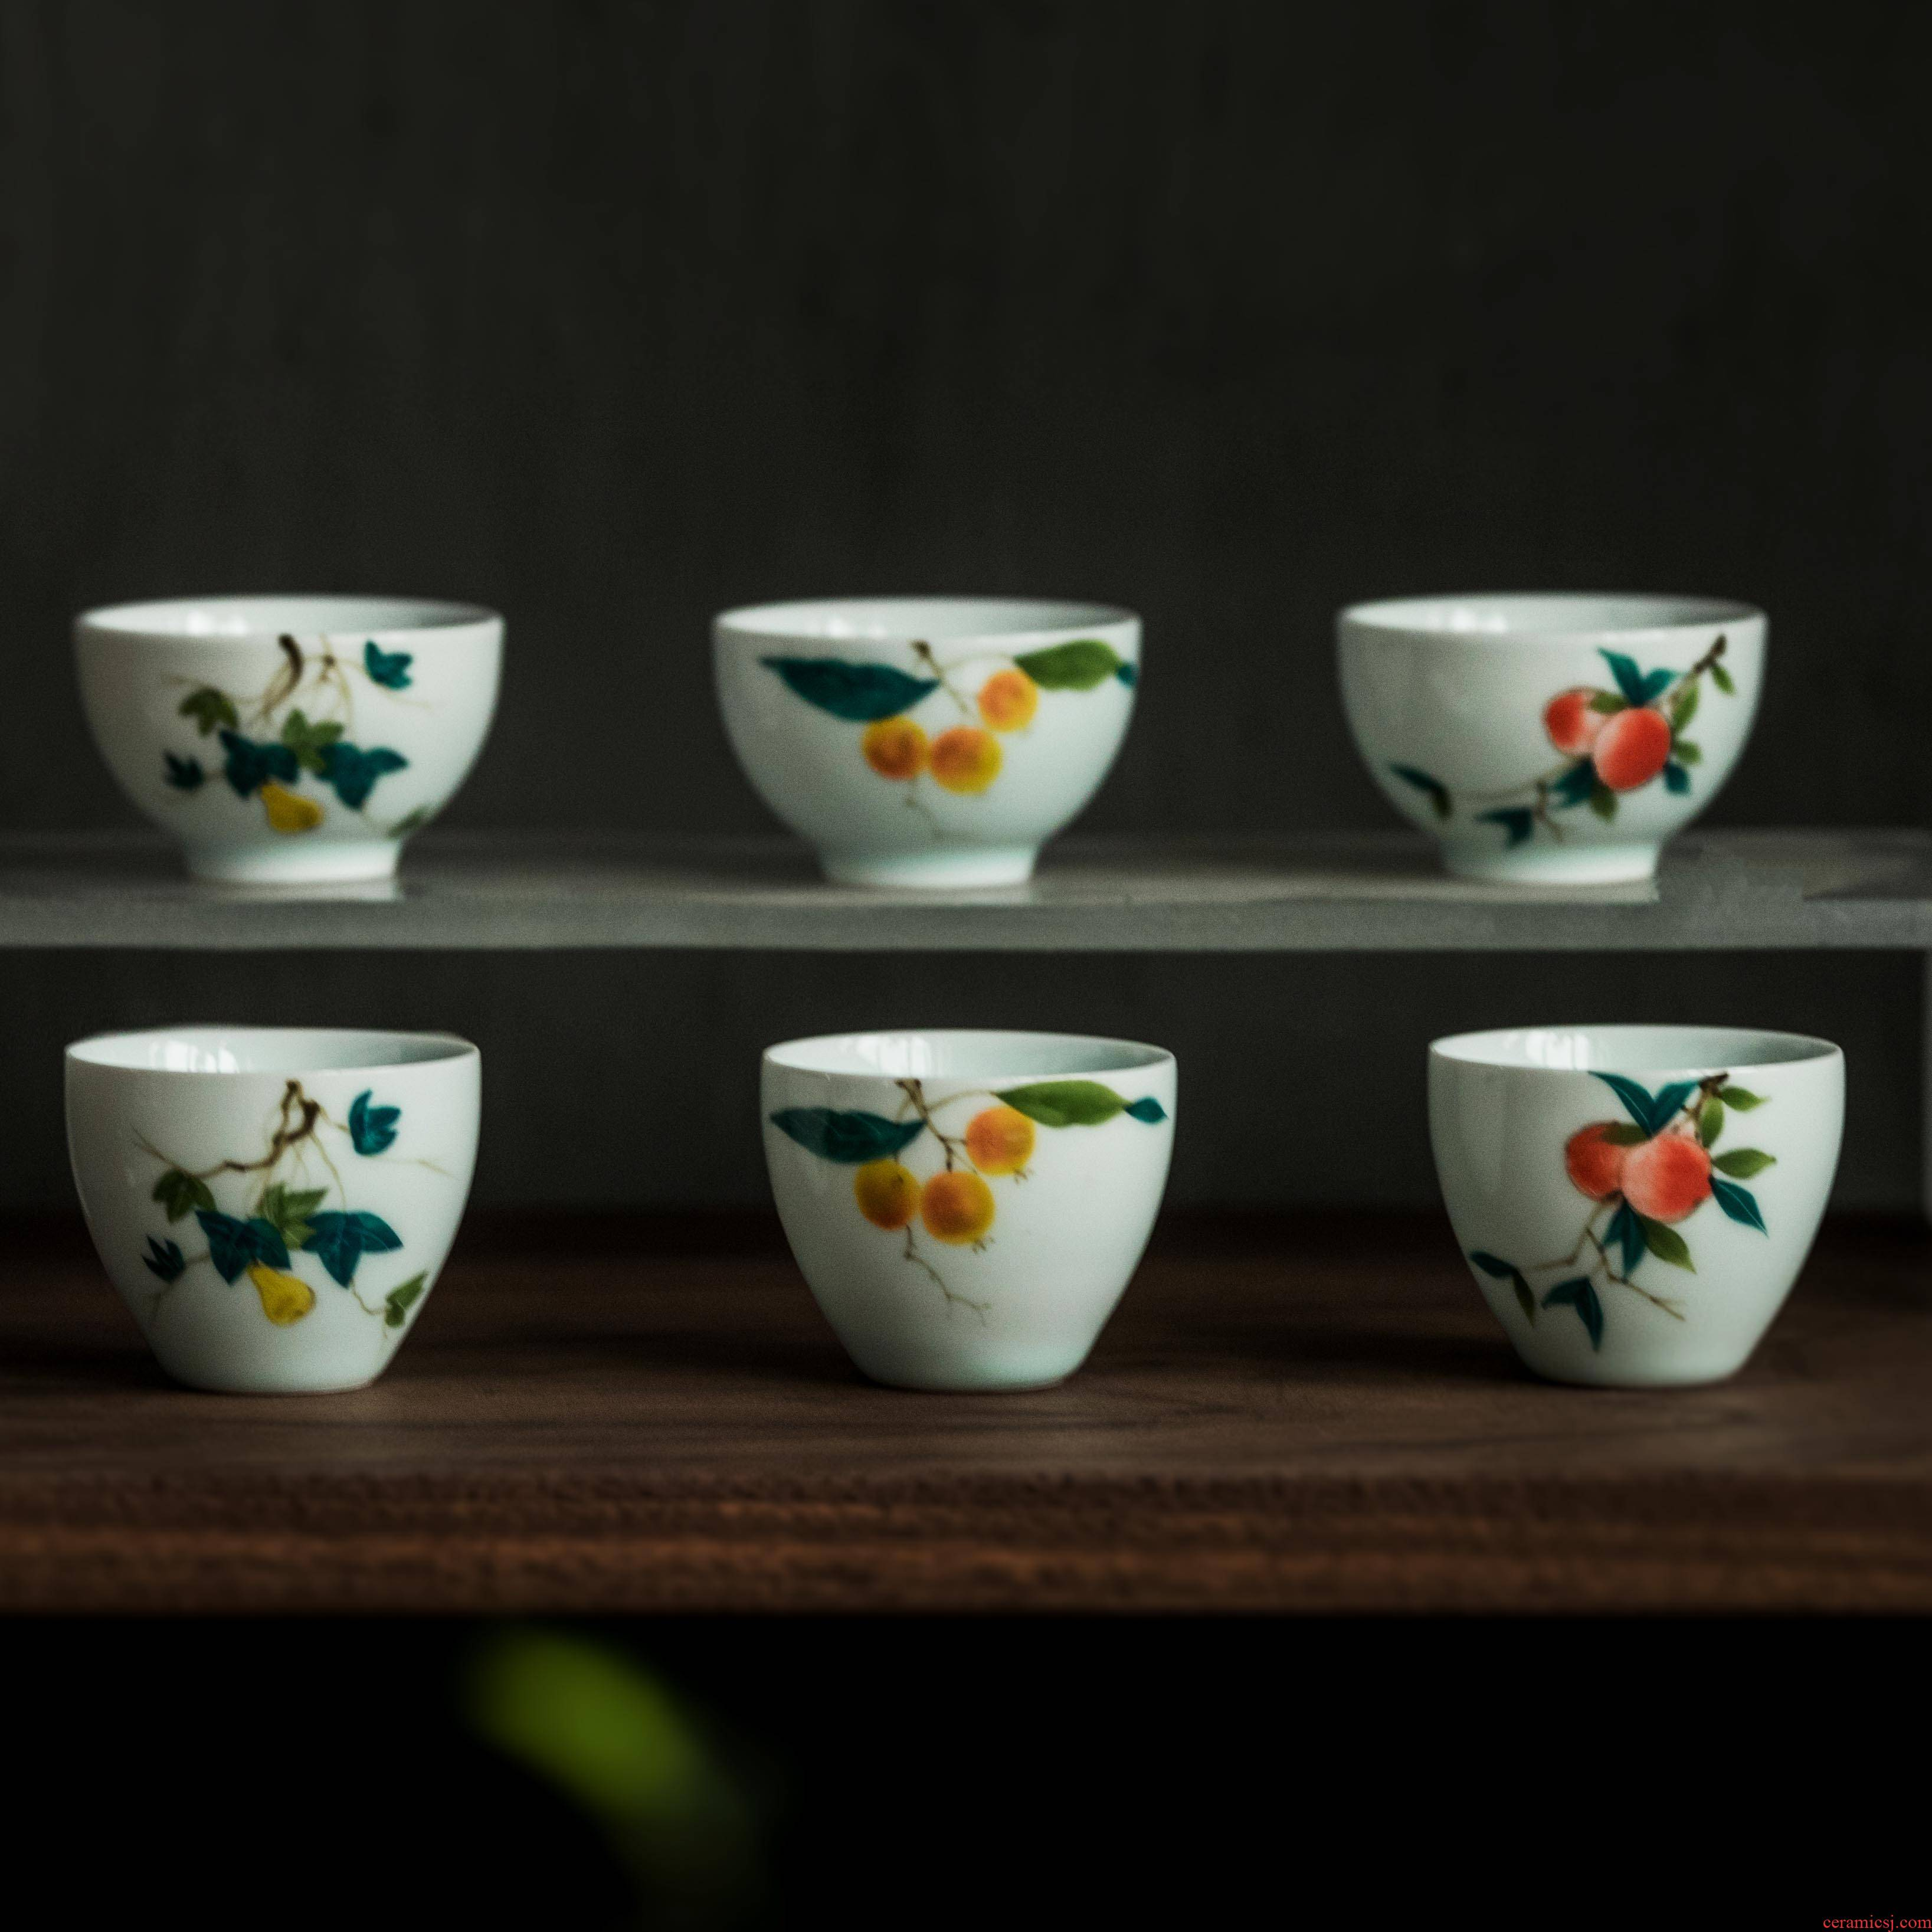 Vegetation school shadow green ceramic hand - made teacup sample tea cup household fragrance - smelling cup cup master kung fu tea set small cups